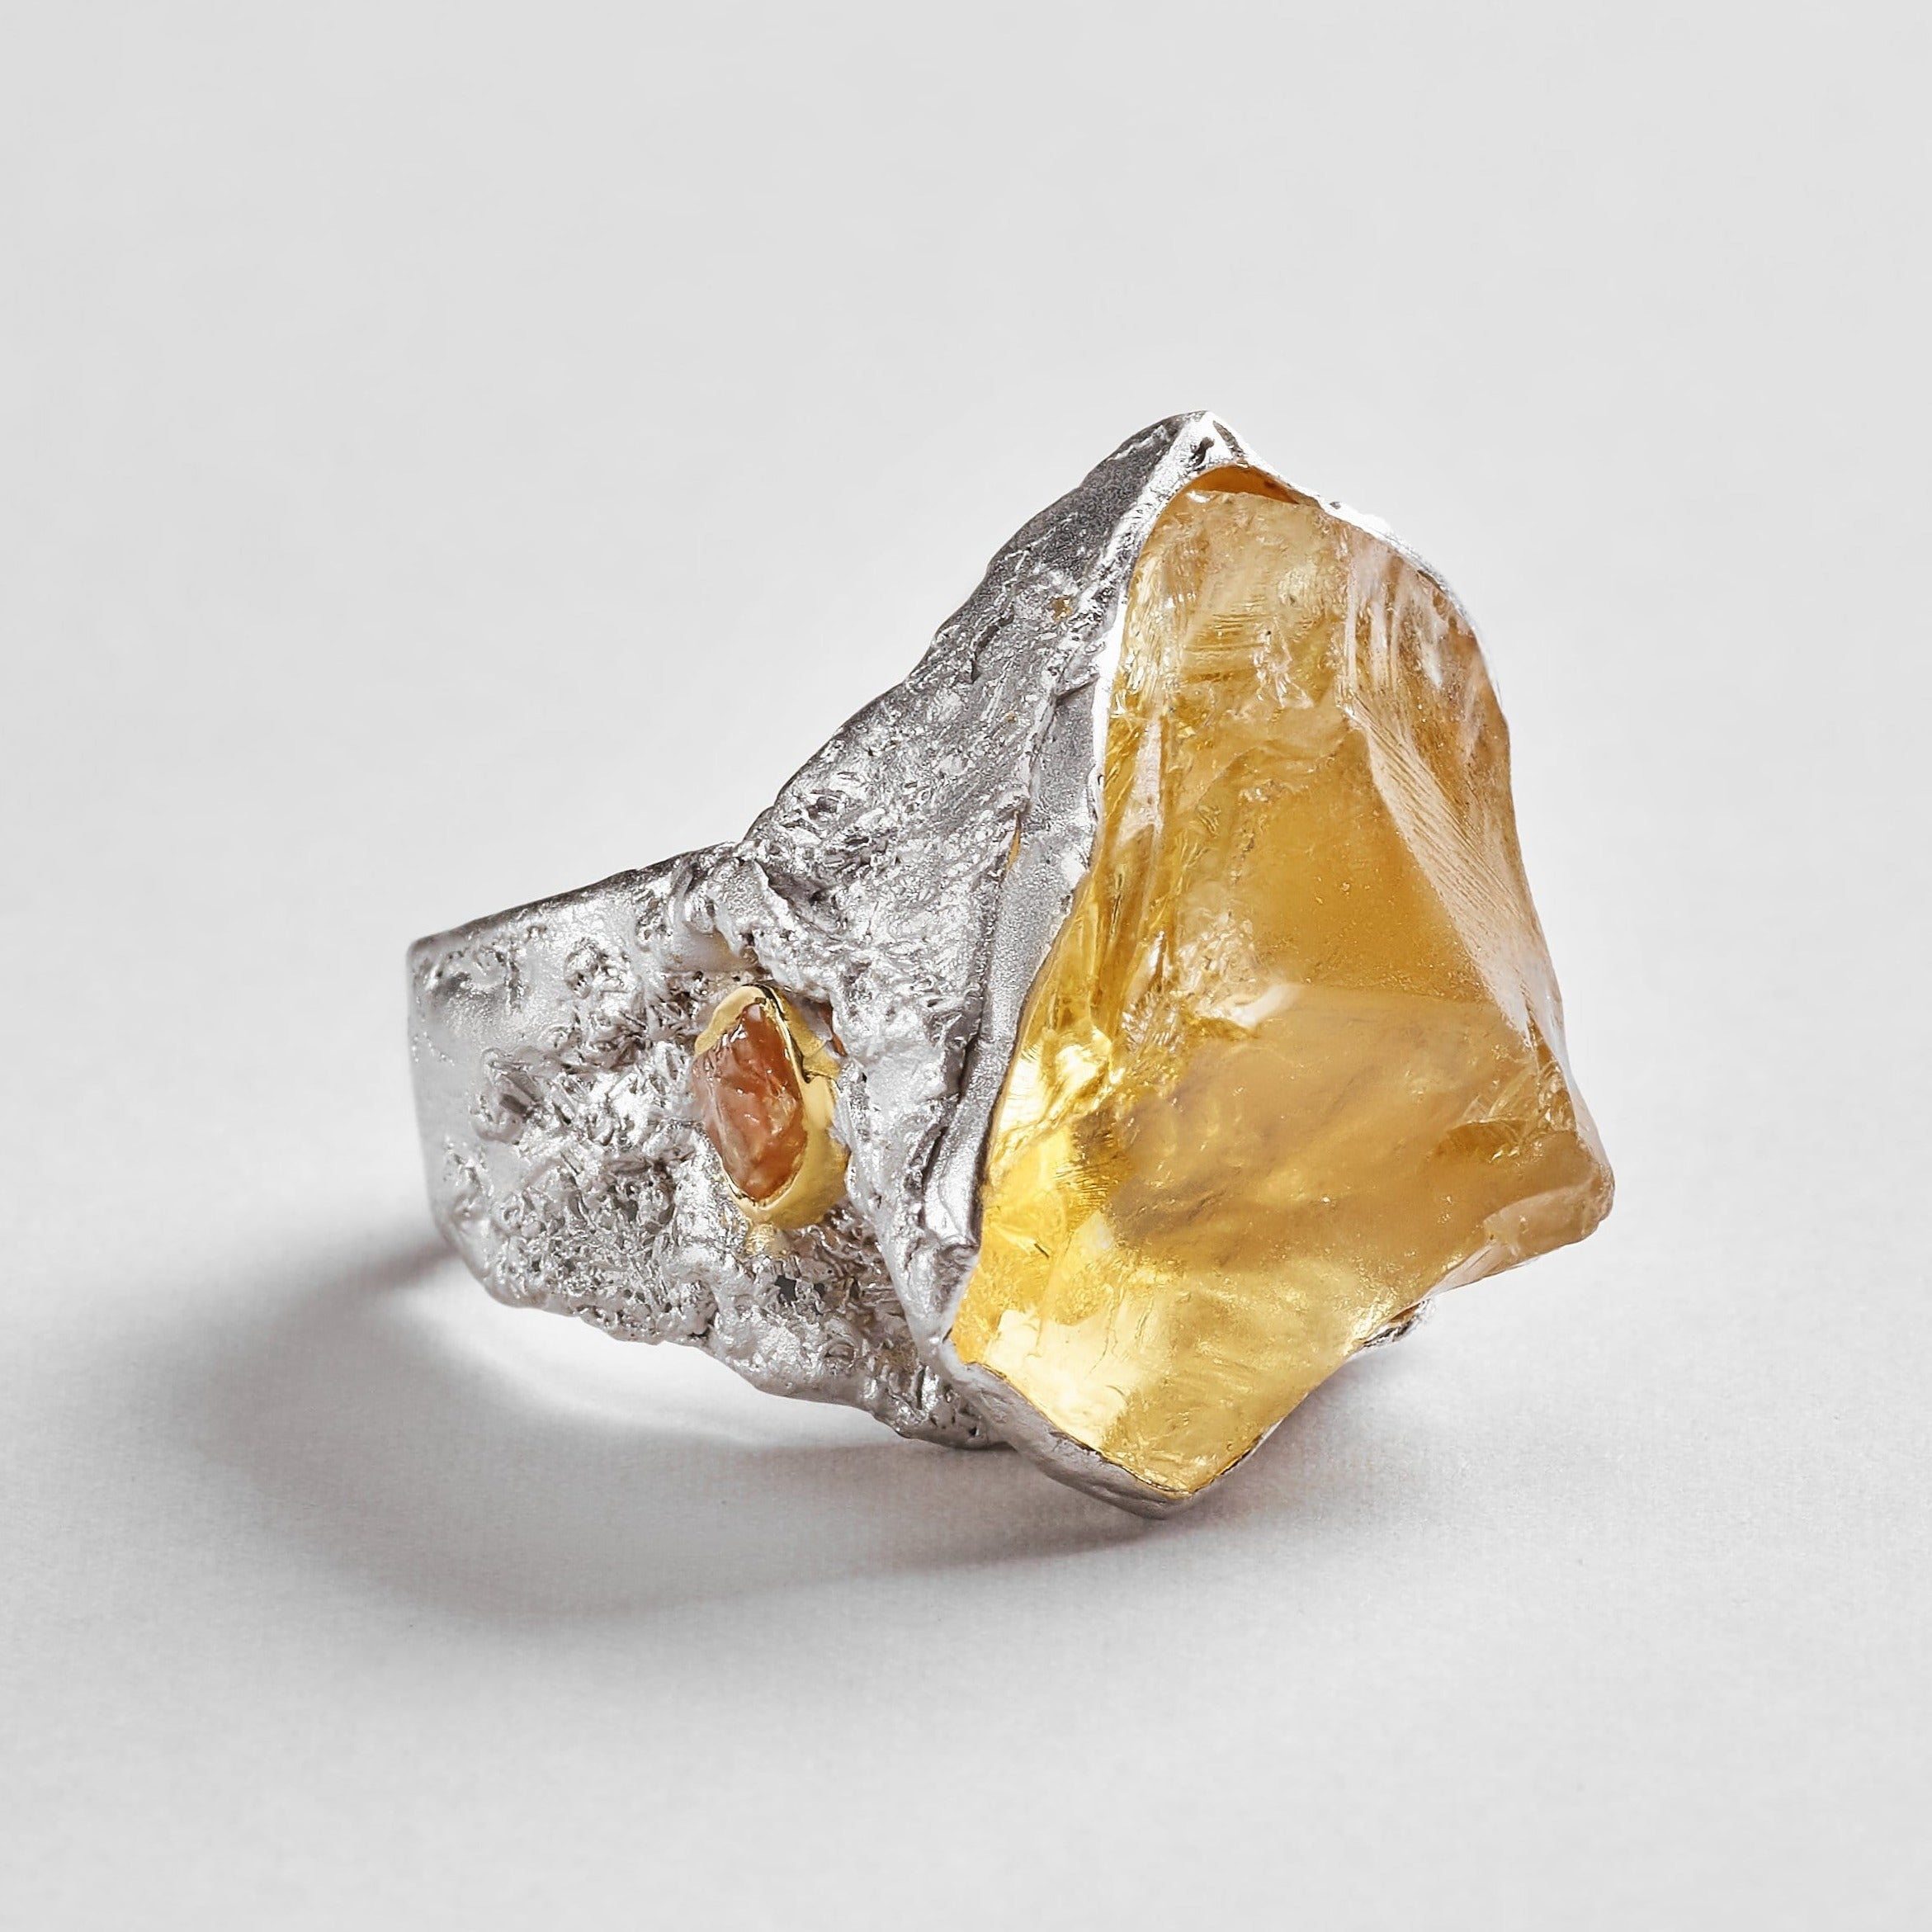 Christel Ring, Citrine, Gold, Handmade, Rhodium, silver, spo-disabled, StoneColor:Red, Style:Statement, Type:LargeSoloStone Ring